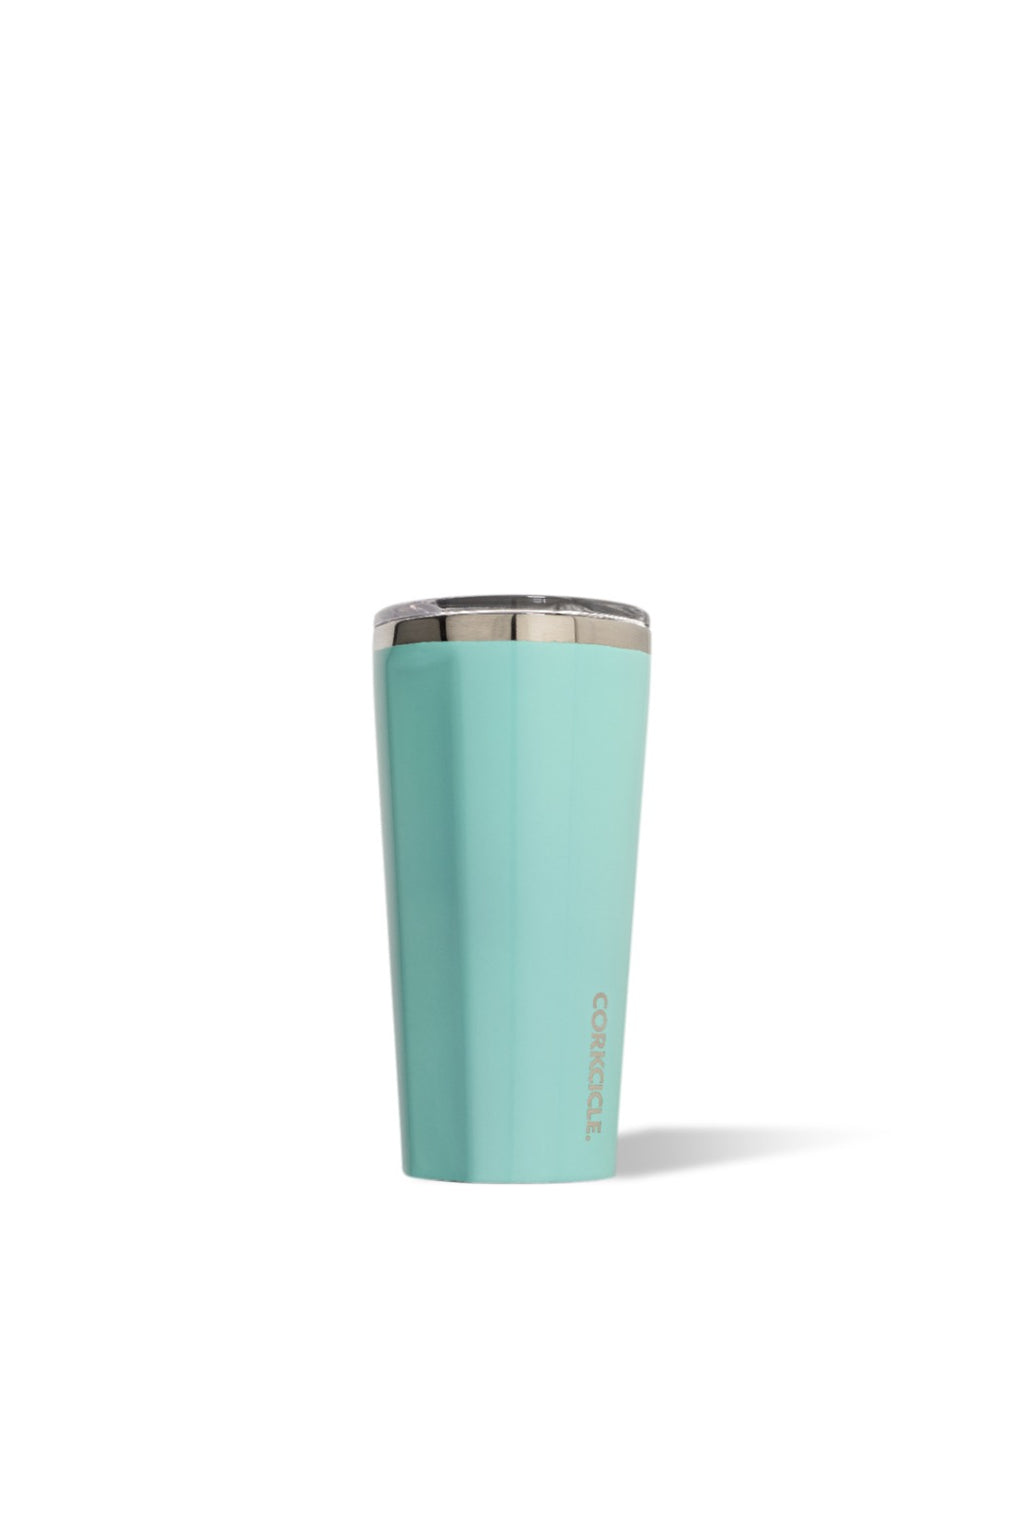 Corkcicle 16 oz. Tumbler in Gloss Turquoise